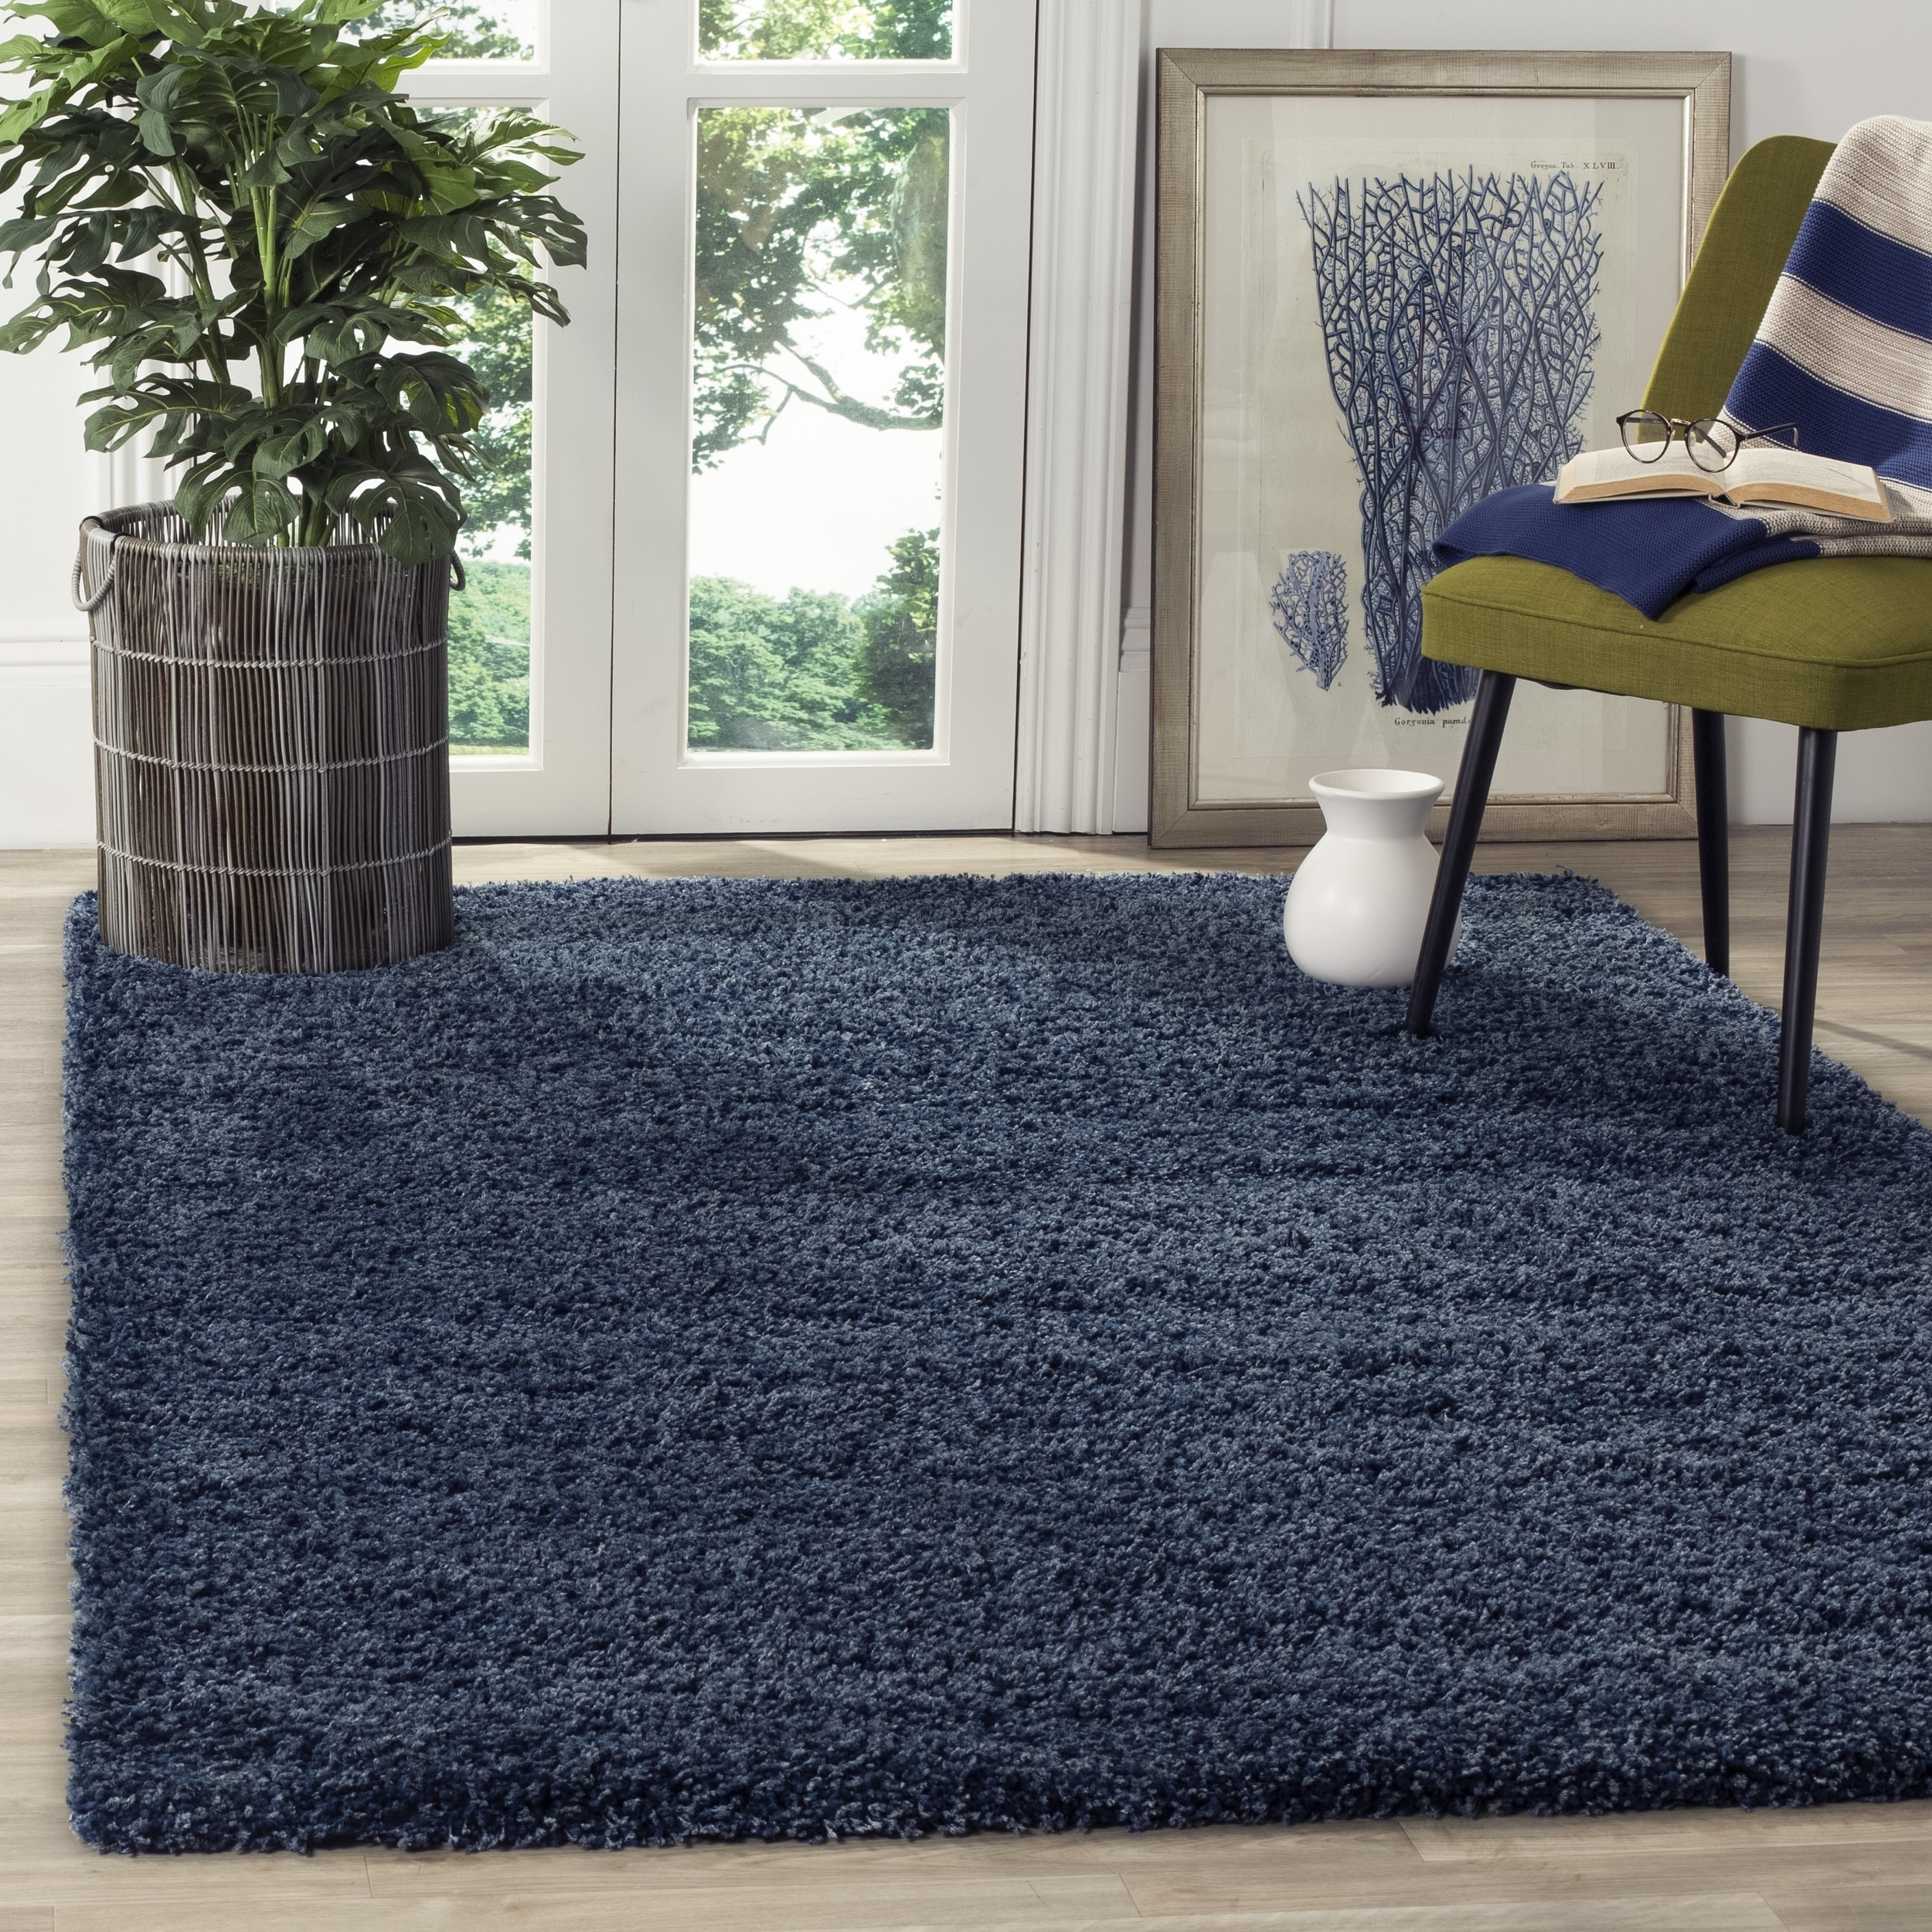 Shop Safavieh California Cozy Plush Navy Shag Rug 8 6 X